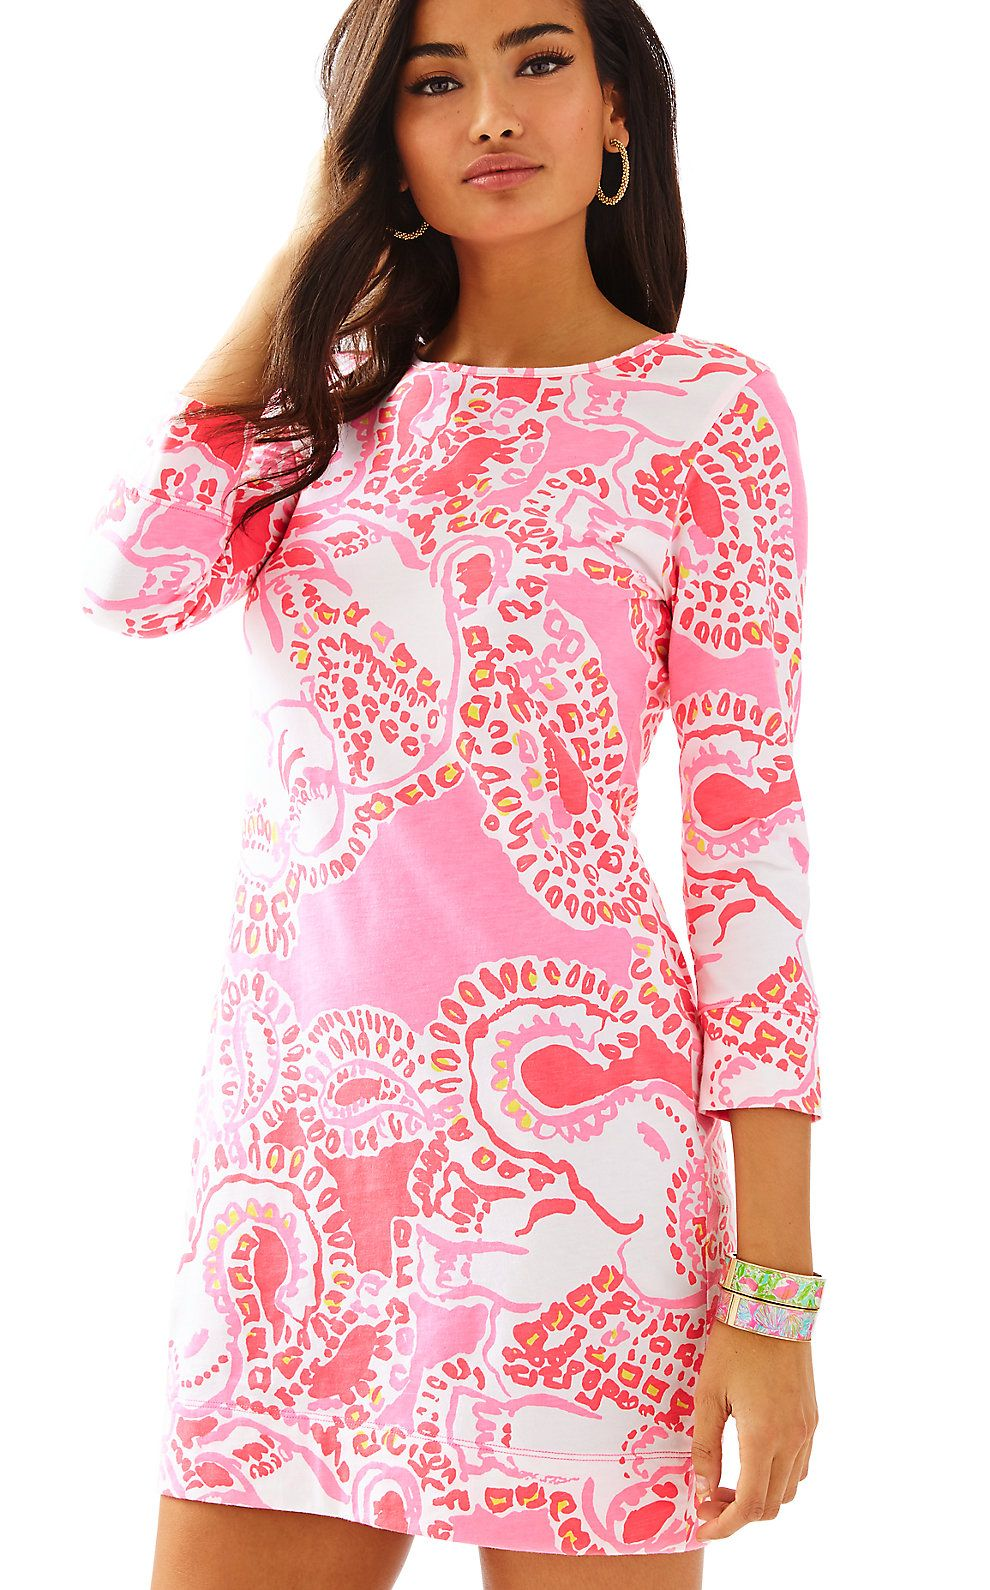 Marlowe Boatneck T-Shirt Dress | Lilly Pulitzer New Arrivals: For ...